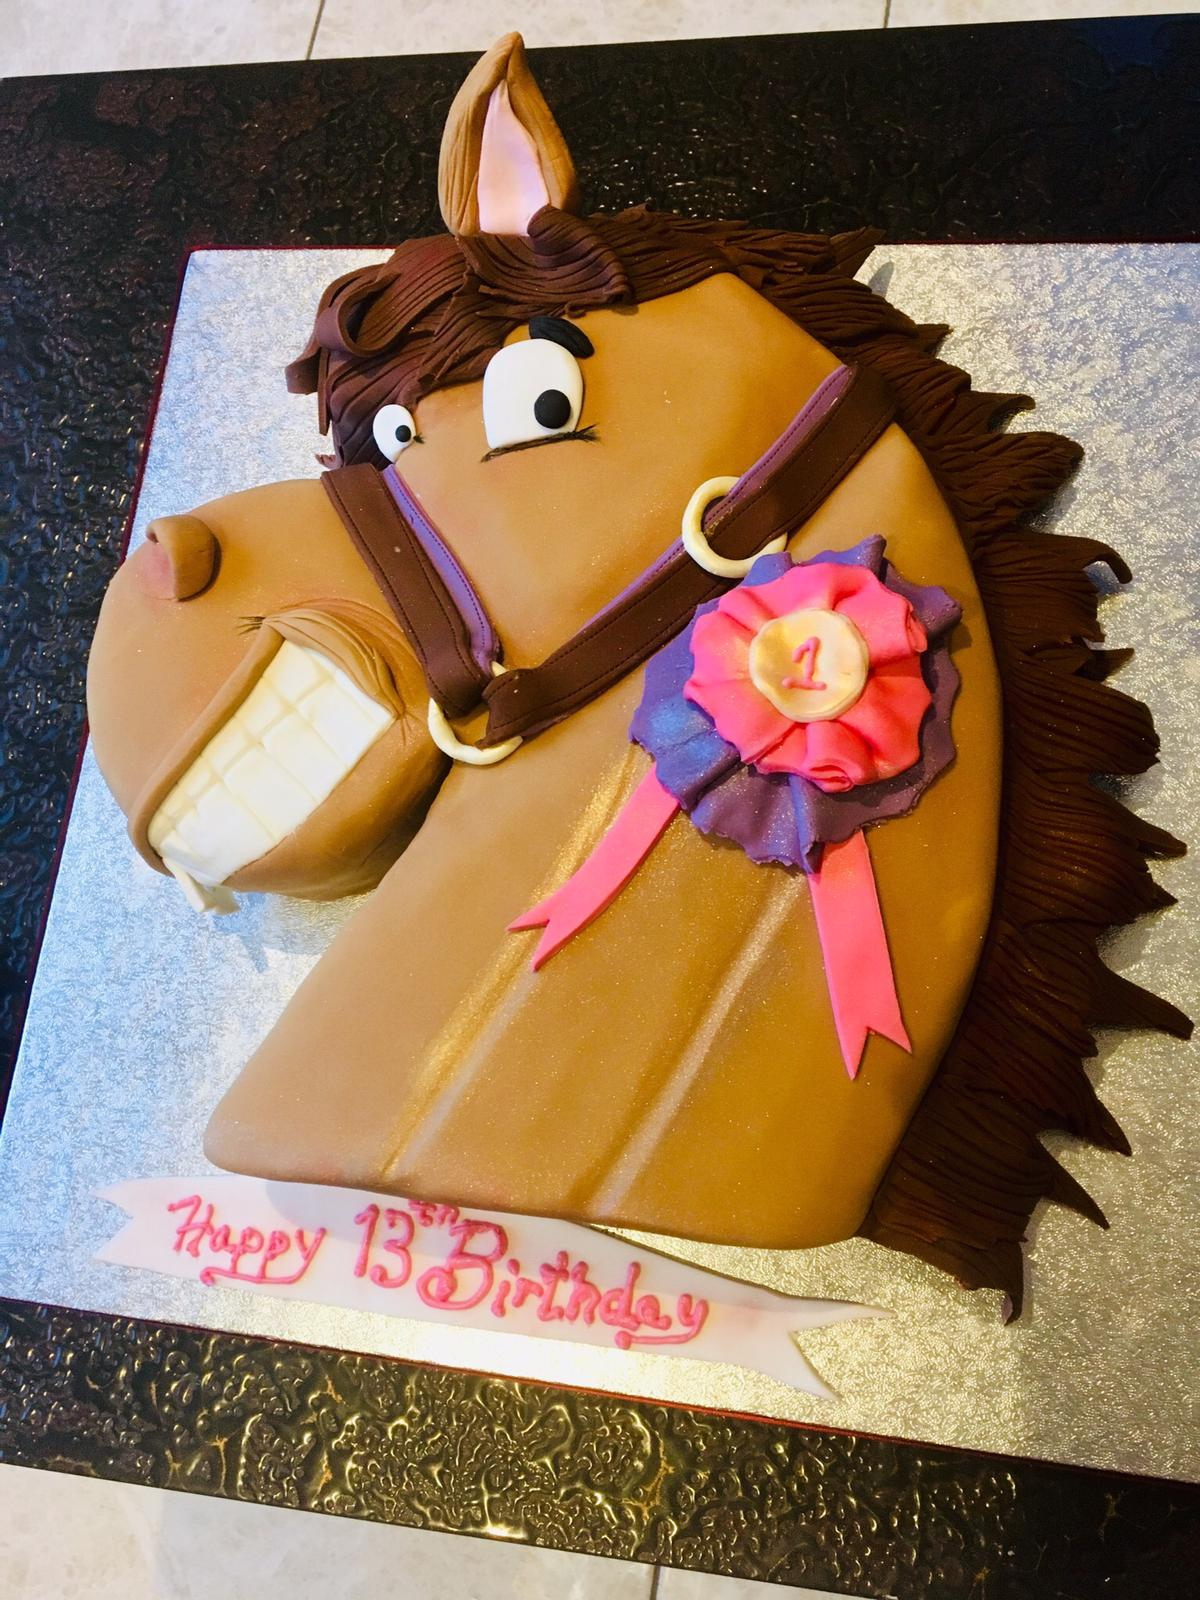 Miraculous Cake Bakers Cake Makers Bathgate Armadale Whitburn Blackburn Funny Birthday Cards Online Alyptdamsfinfo